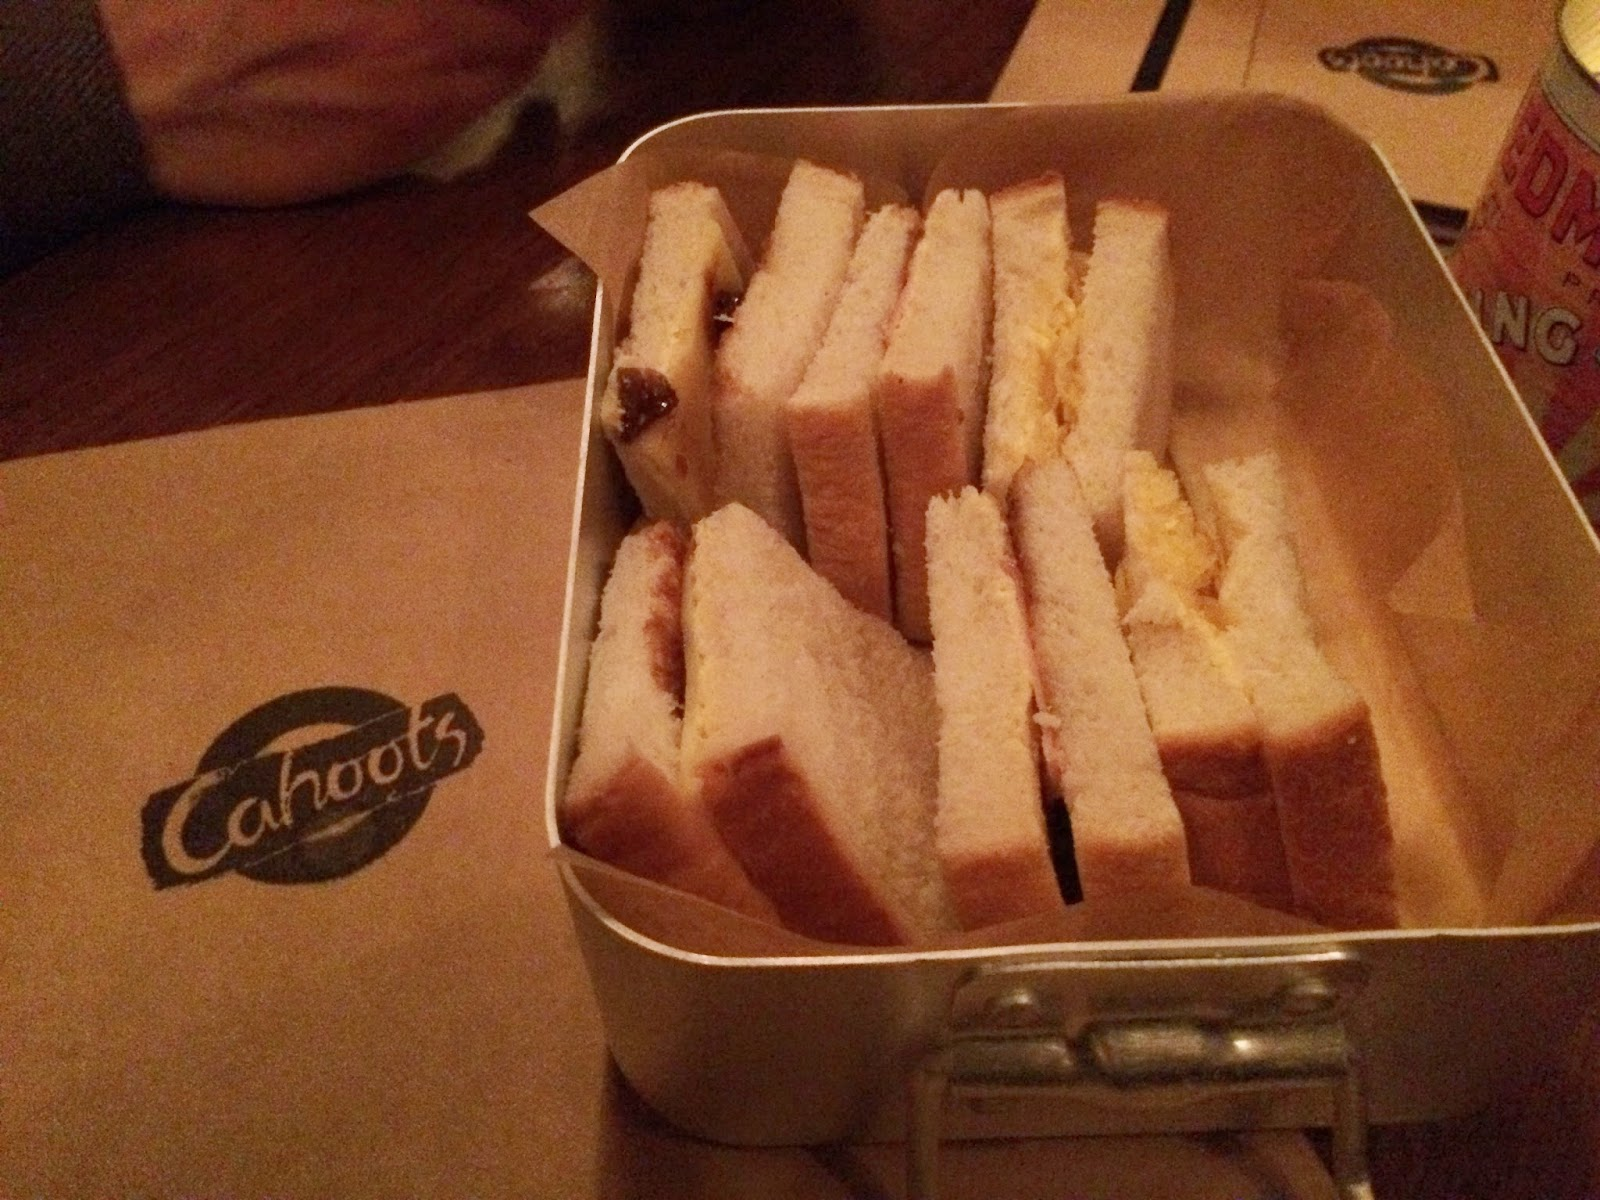 Complementary cheese and pickle sandwiches - Cahoots